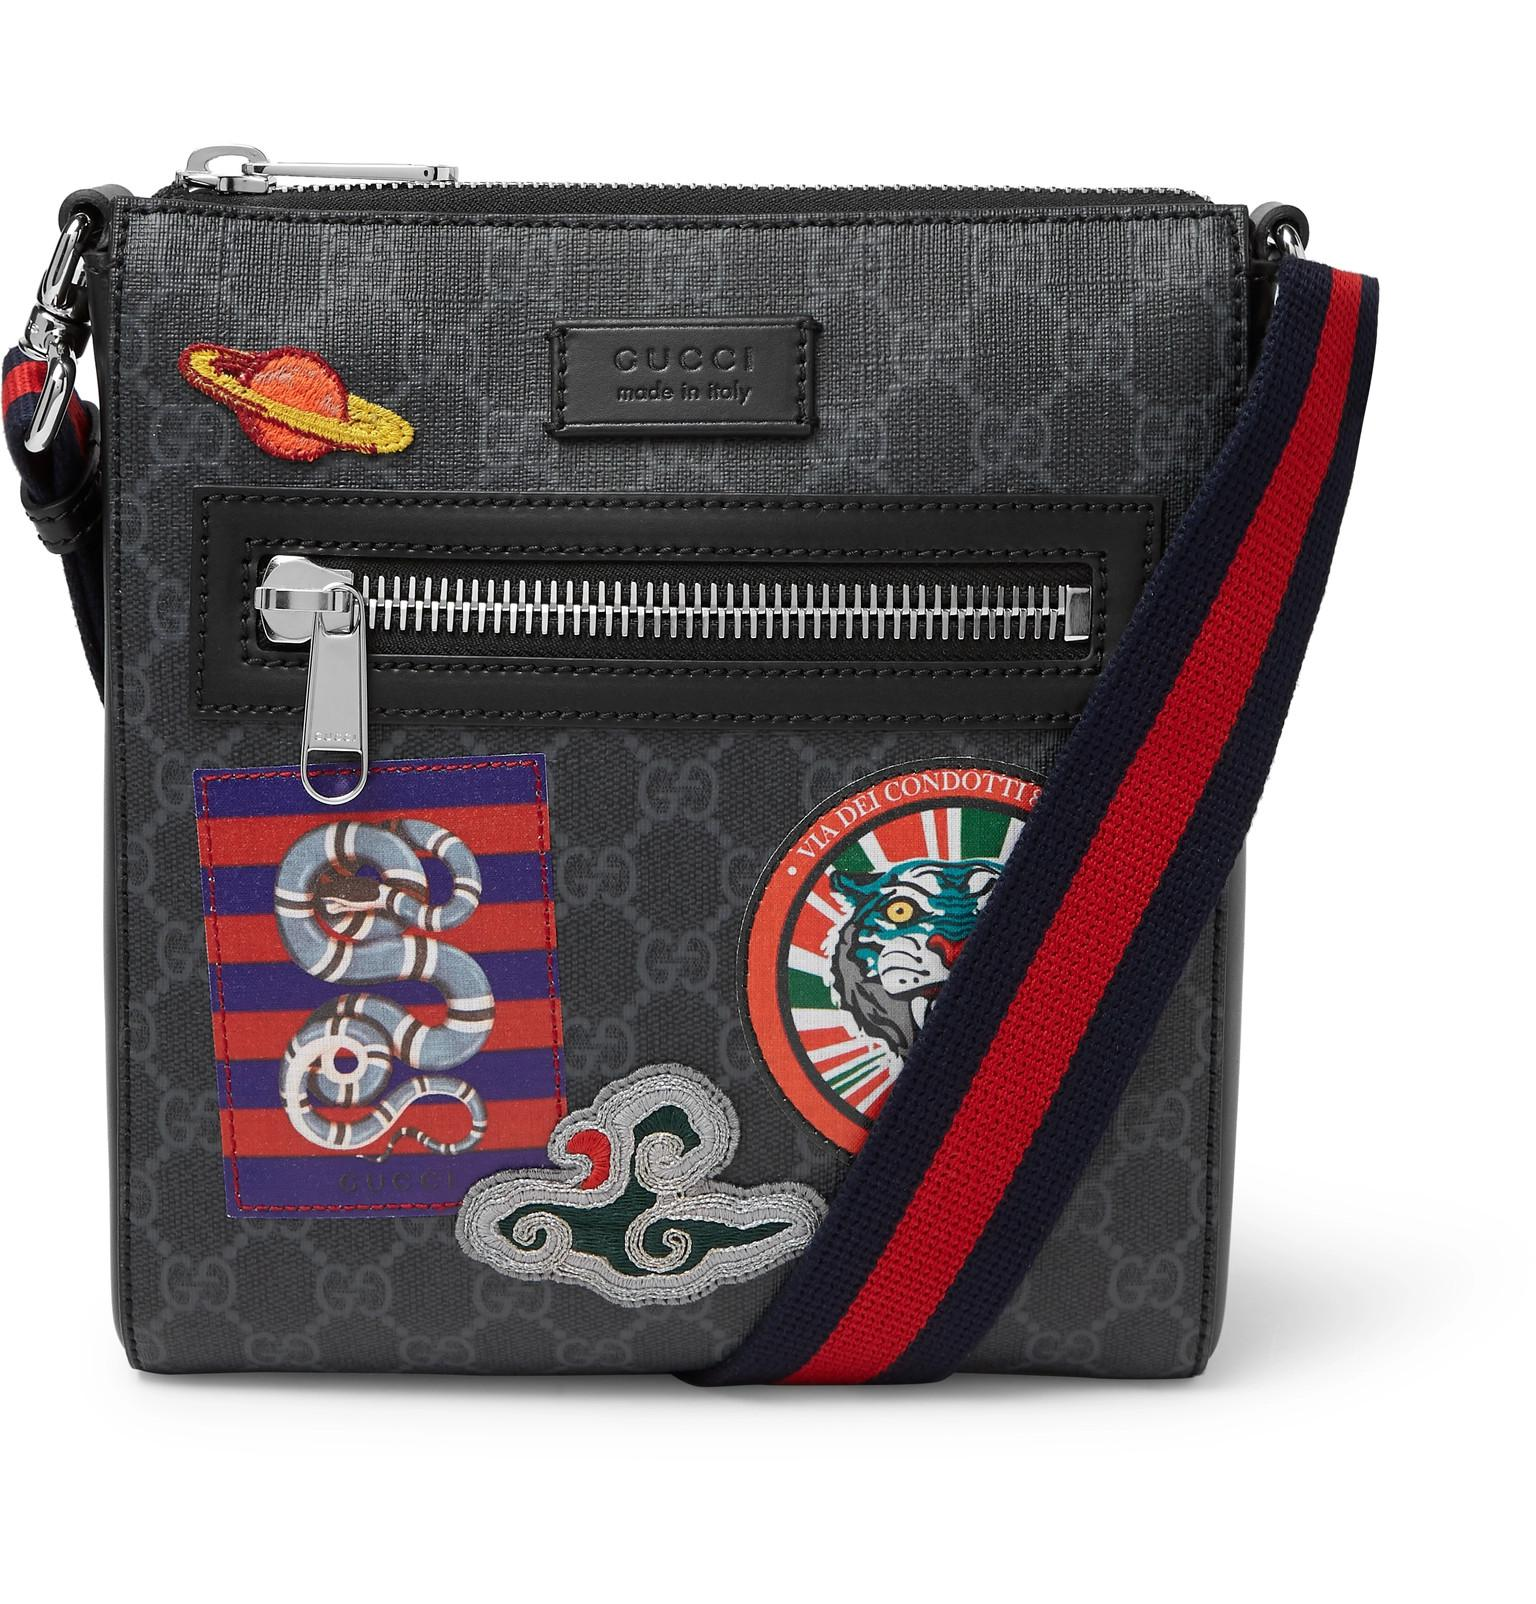 b6c454121b85 Gucci - Black Night Courrier Leather-trimmed Appliquéd Monogrammed Coated- canvas Messenger Bag for. View fullscreen